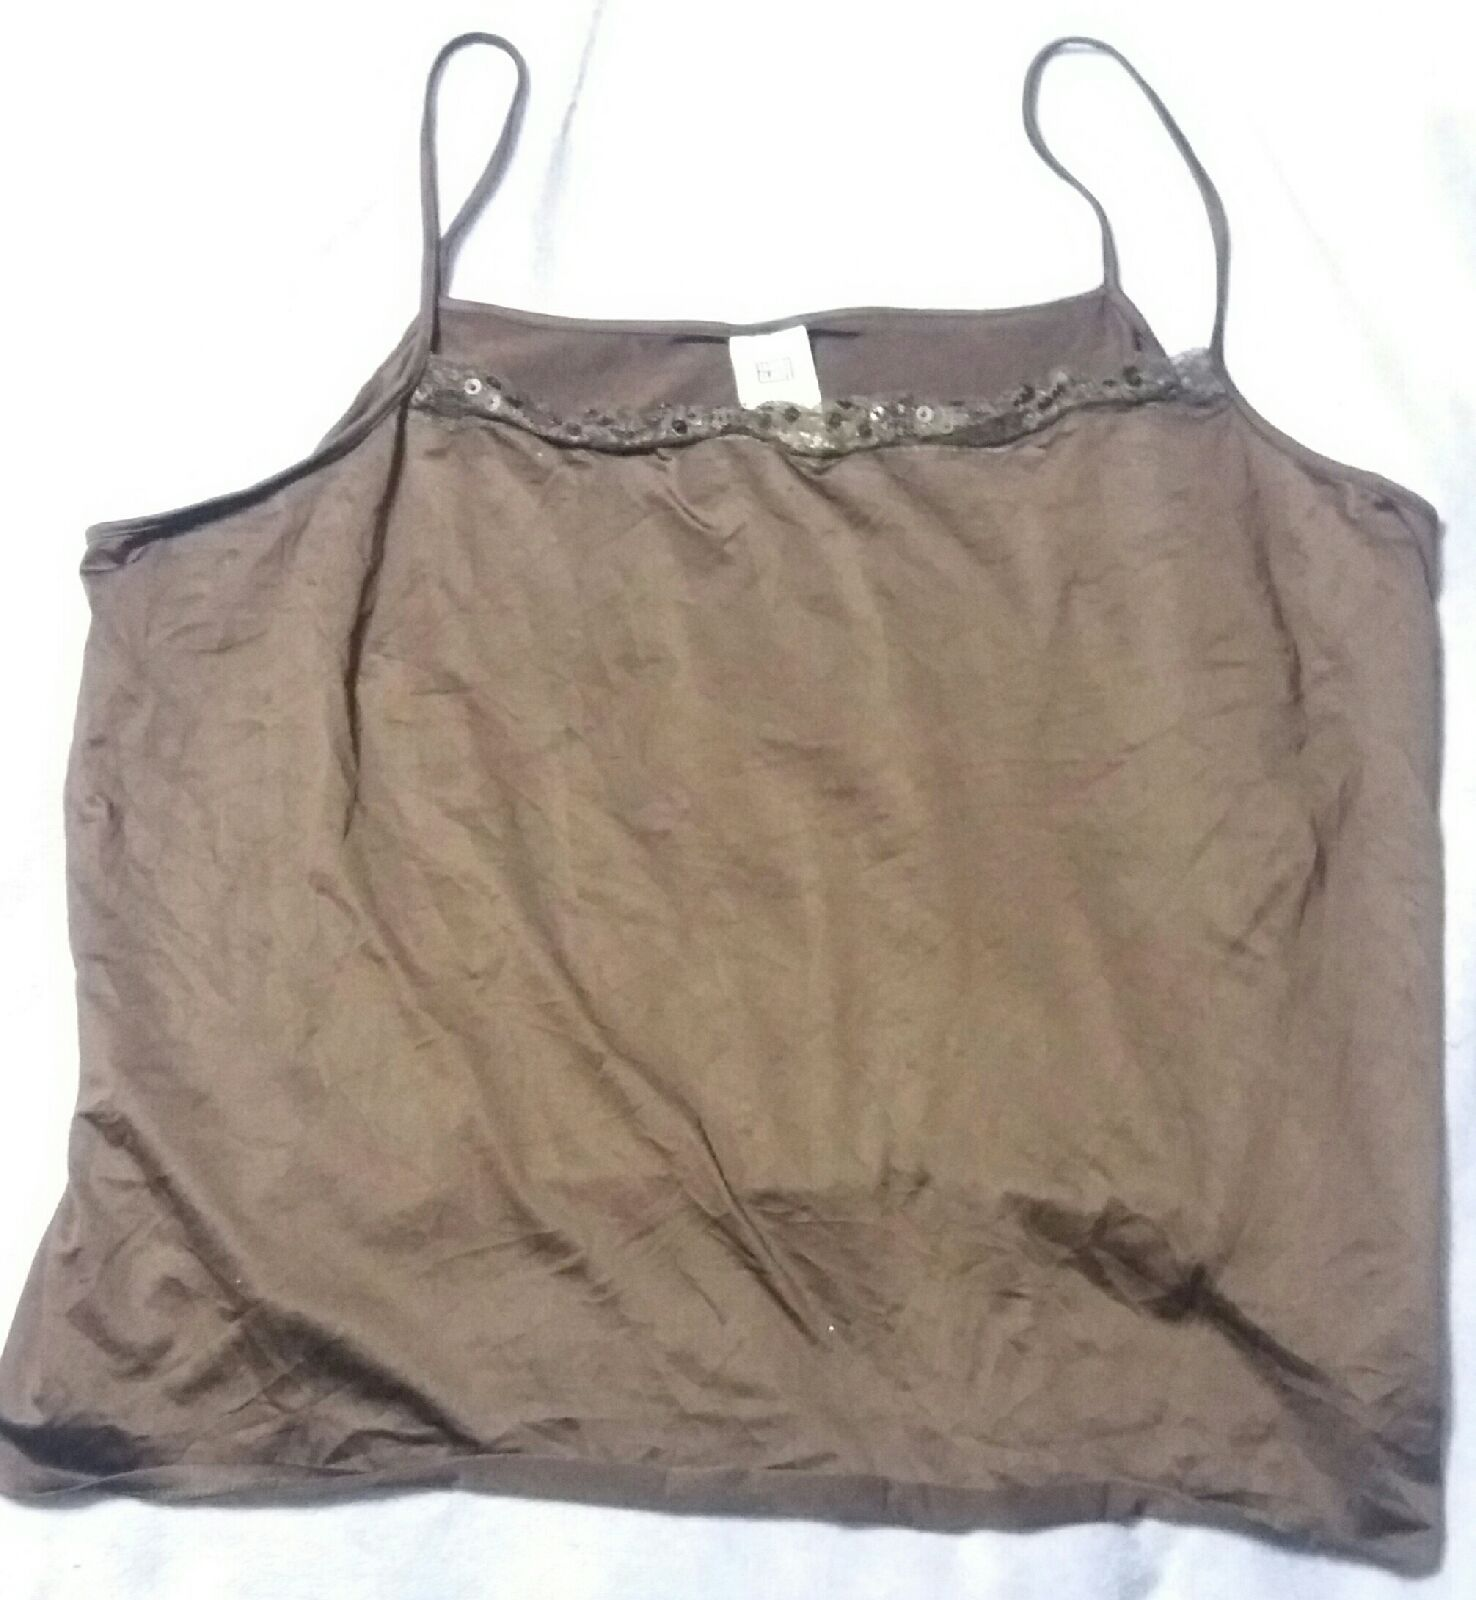 NEW Faded Glory Plus Size Brown w/lace 26/28 26 28 4x Tank Cami Top Shirt Short Sleeves Free Ship  NEW.  Didn't fit.  Don't remember if I washed it after untagging it or not ...   https://nemb.ly/p/VkeEpAKj_ Happily published via Nembol